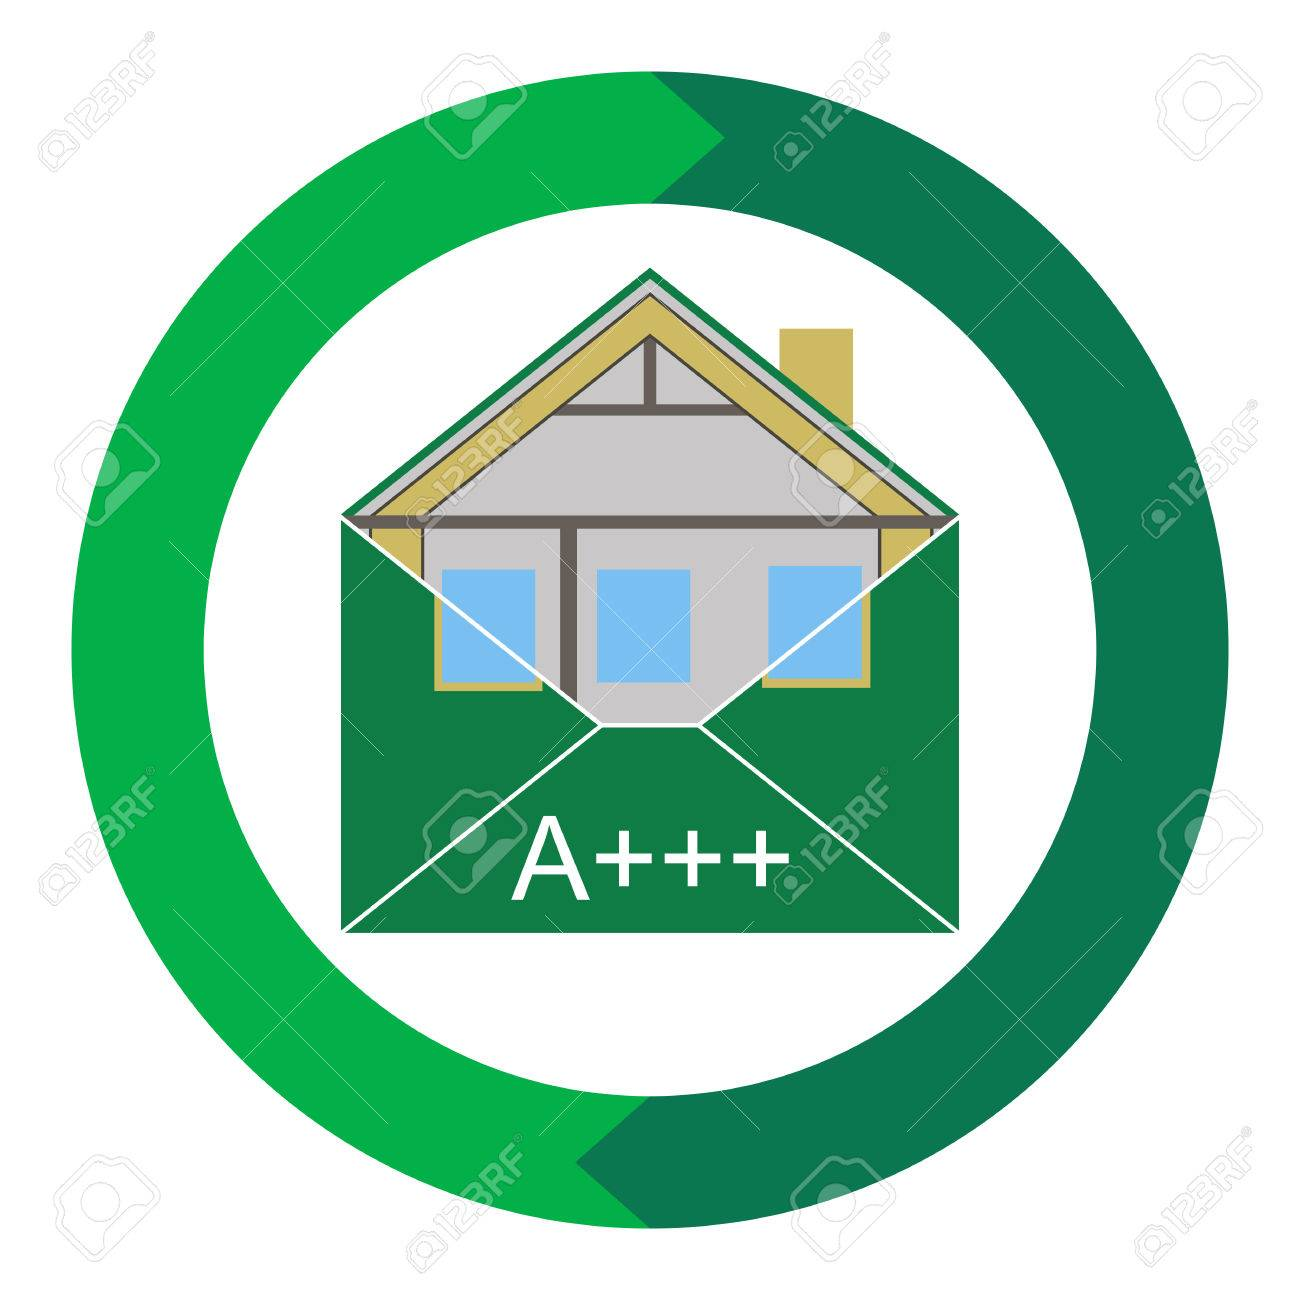 House Eco Green Building Envelope Energy Efficiency Weatherization  Construction Standards Home Insulation Thermal Environmentally Friendly And